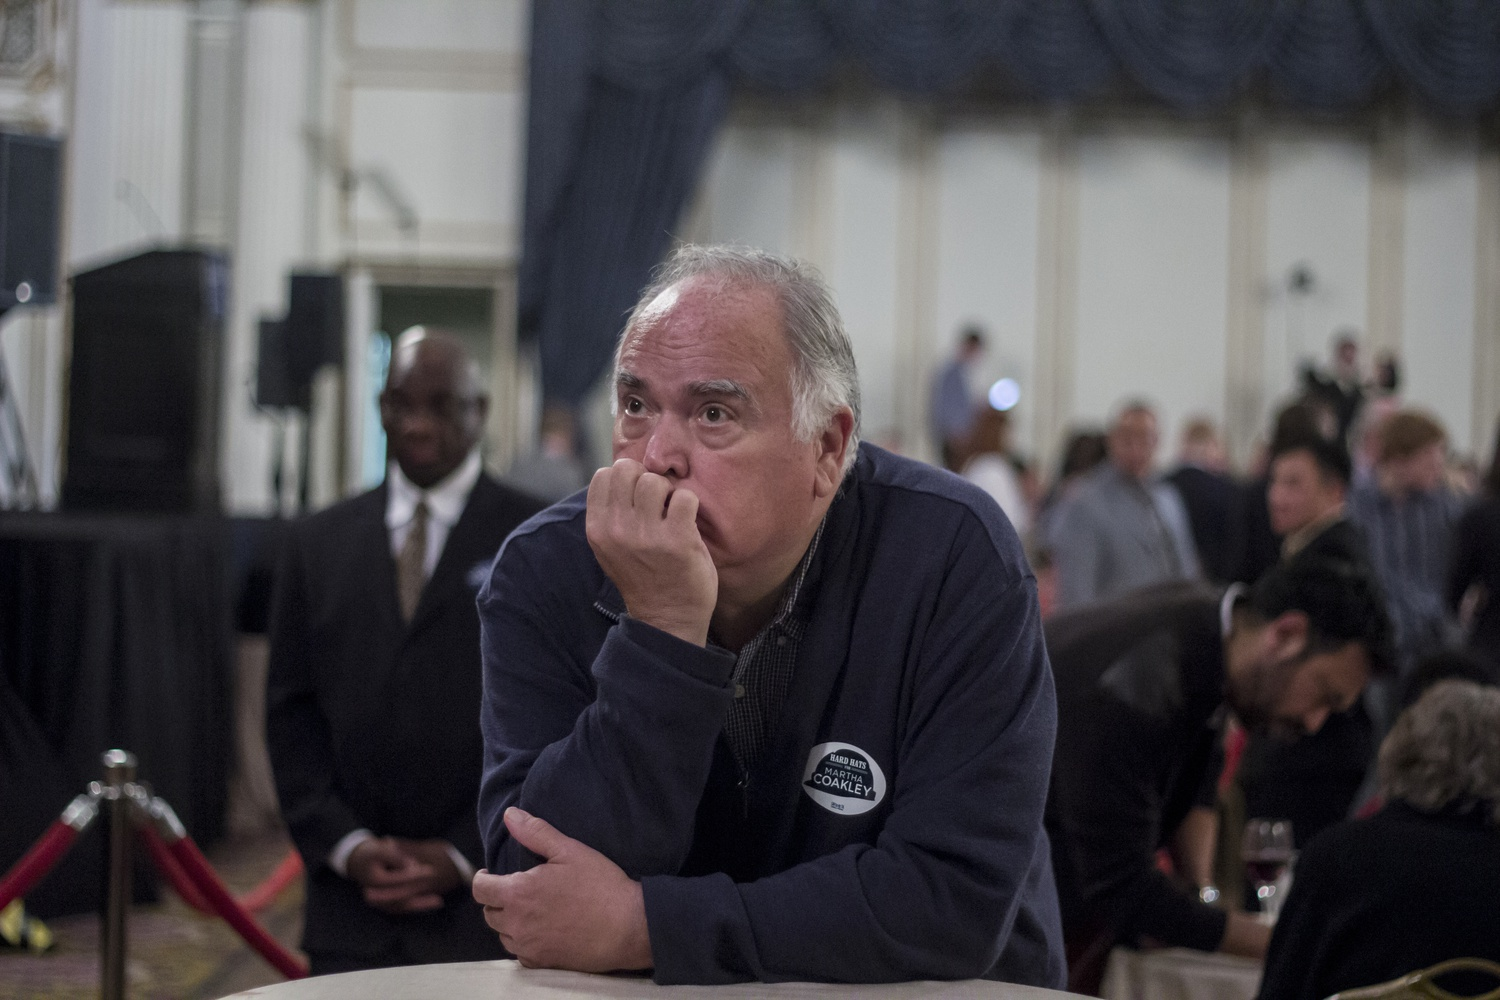 A Coakley supporter looks dejected at the election results at the Fairmont Copley Plaza.